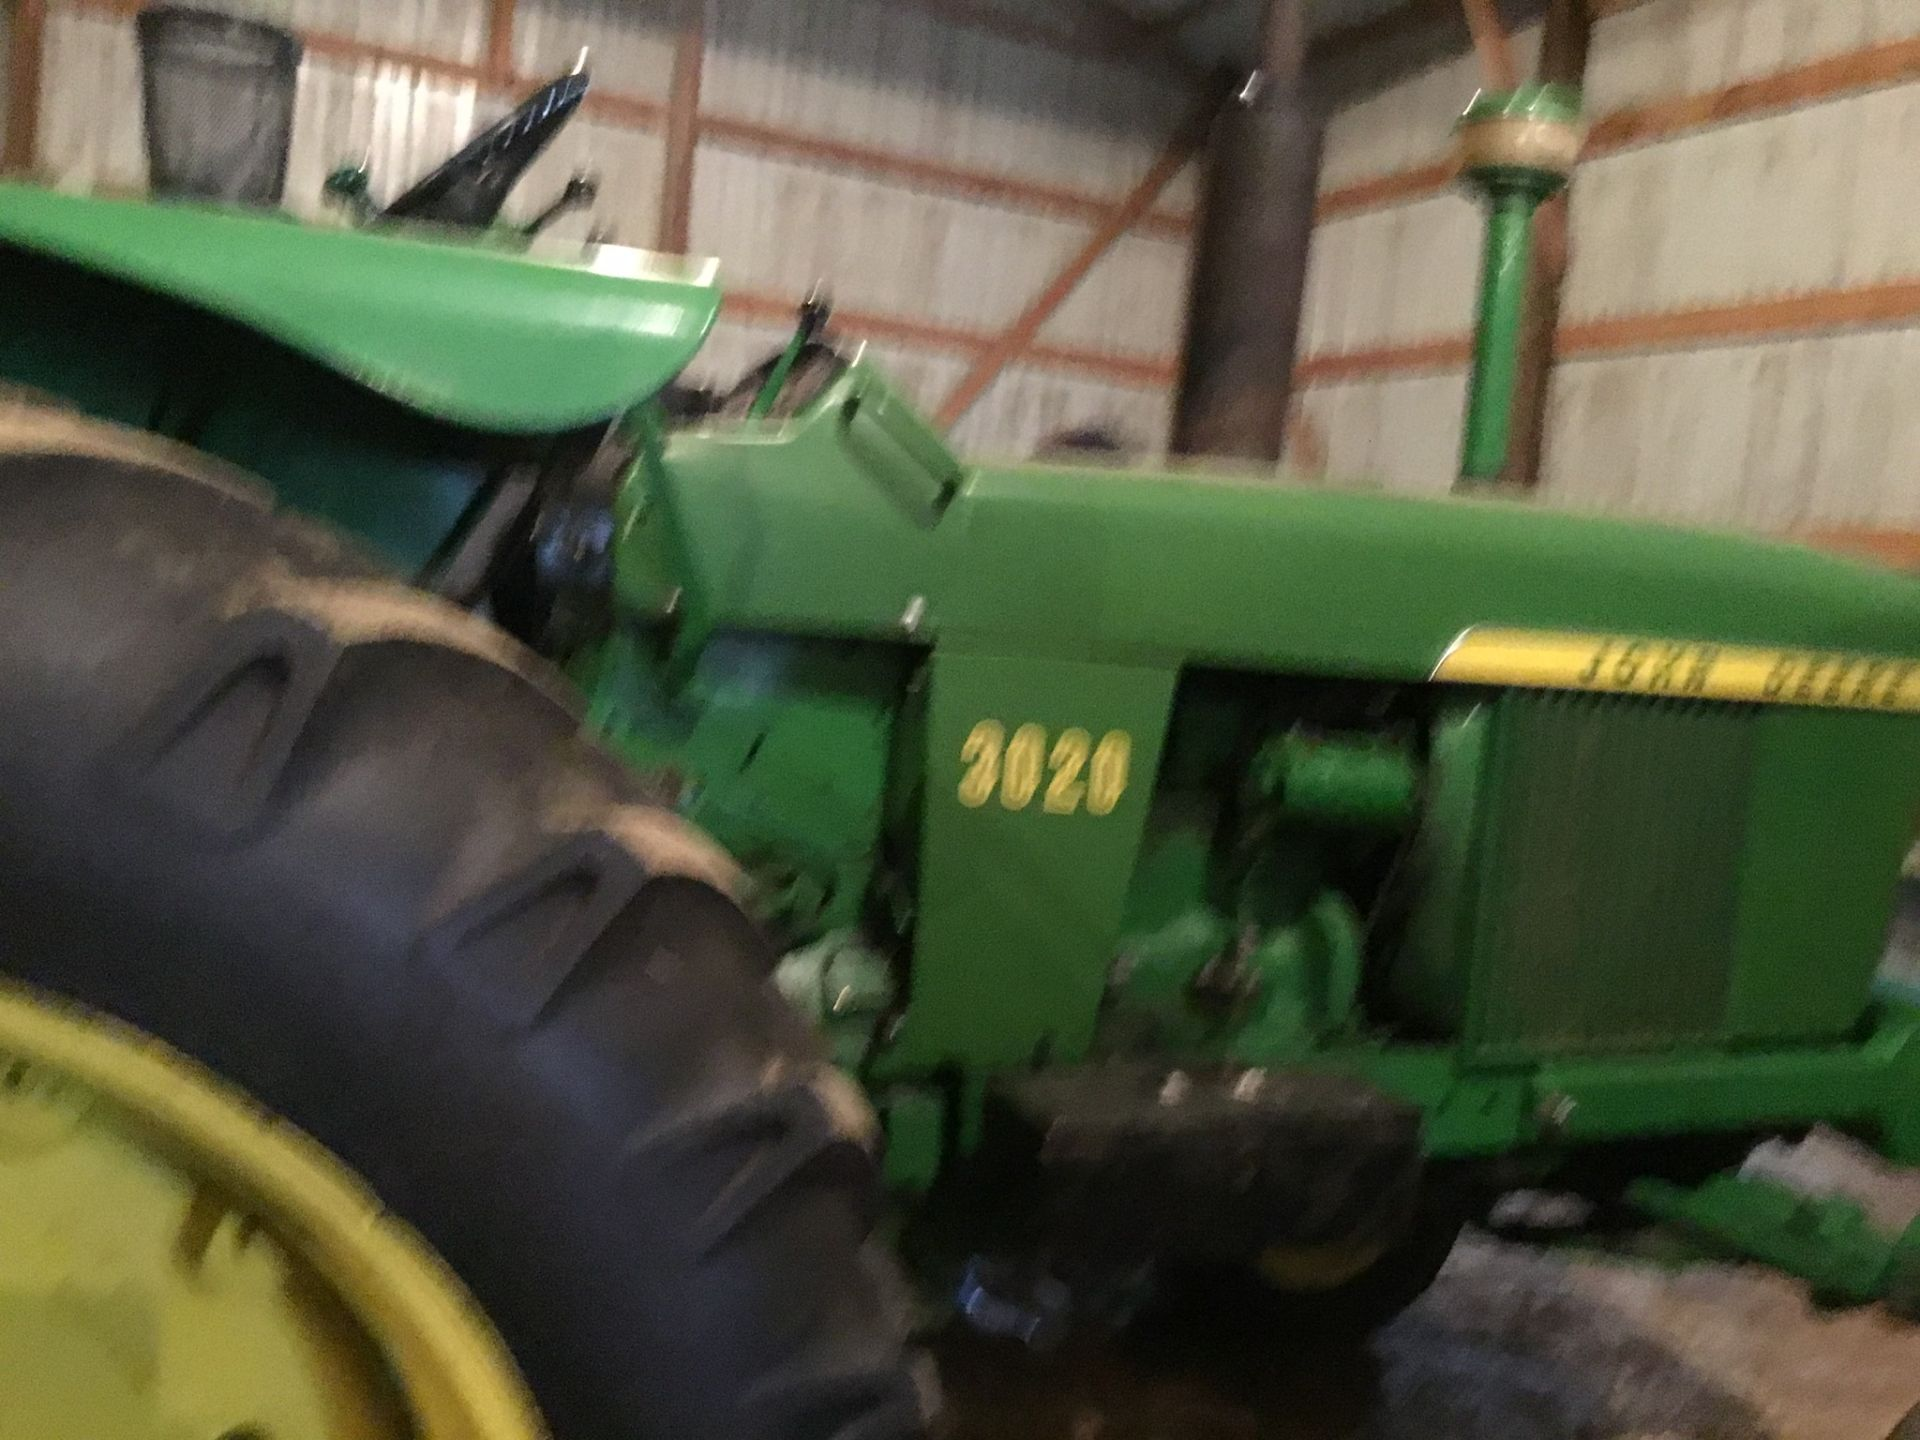 1966 John Deere 3020 Gas, JD Wide Front, Synchro Range, Roll Bar & Canopy, Dual Hydraulic Remotes, - Image 4 of 13